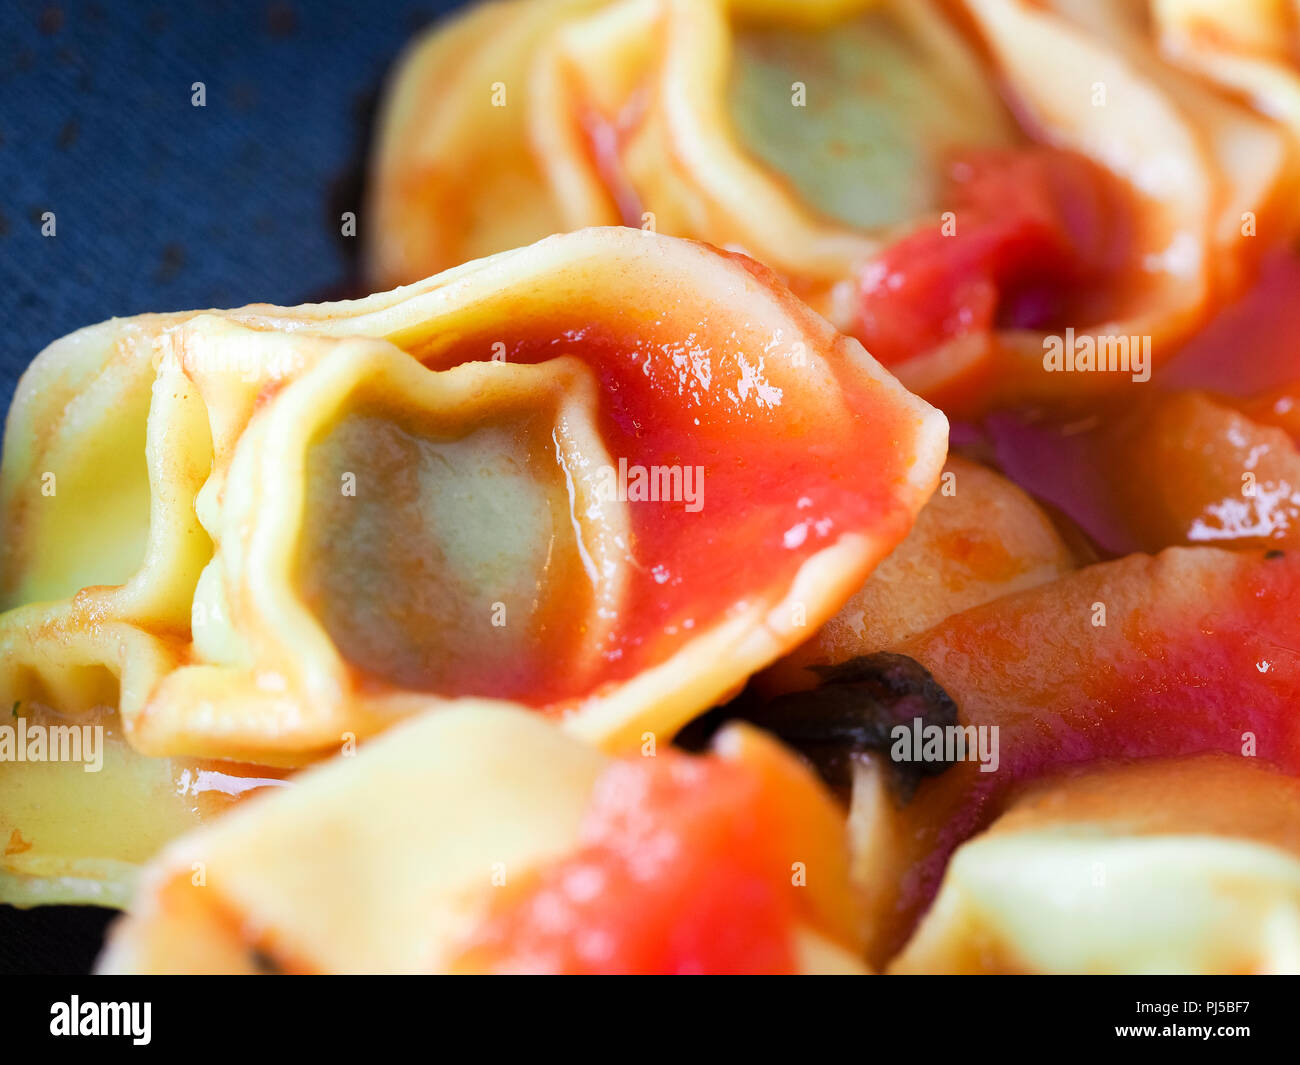 Cooking lunch at home, spinach and ricotta cheese tortellini stuffed italian pasta with tomato pomodoro sauce - Stock Image